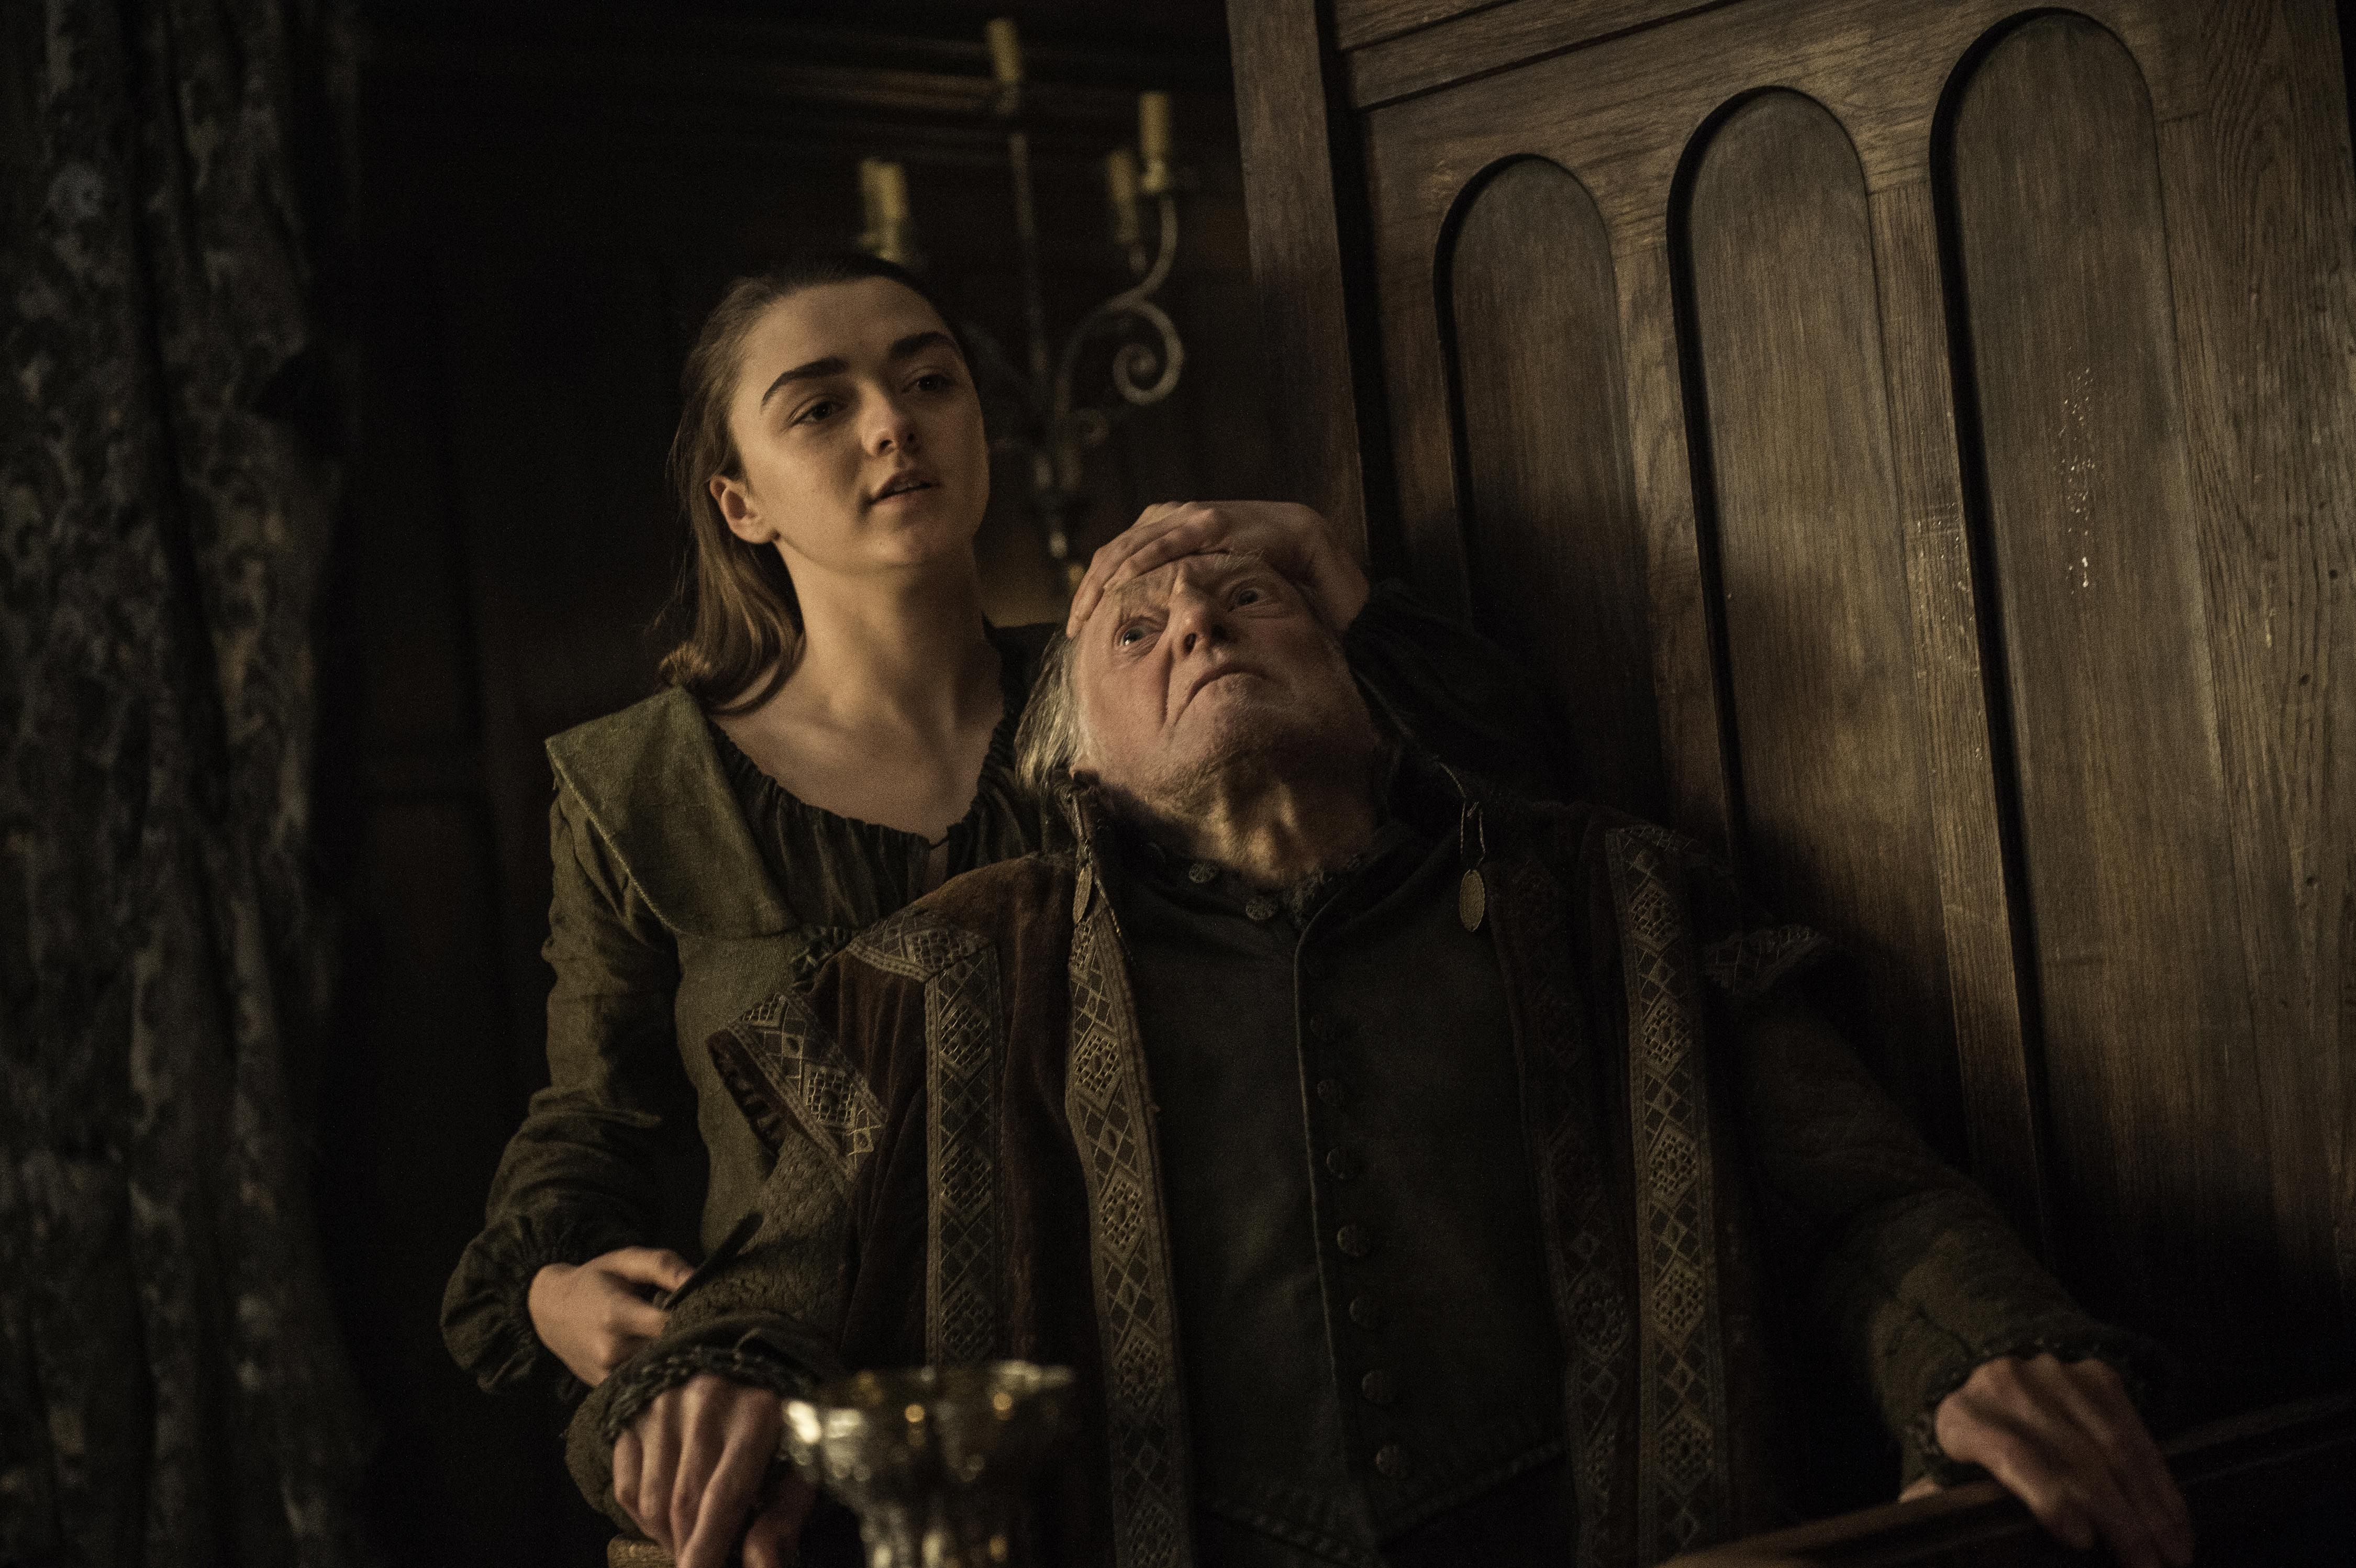 Pics Maisie Williams On The Season 7 Set Wearing A Very